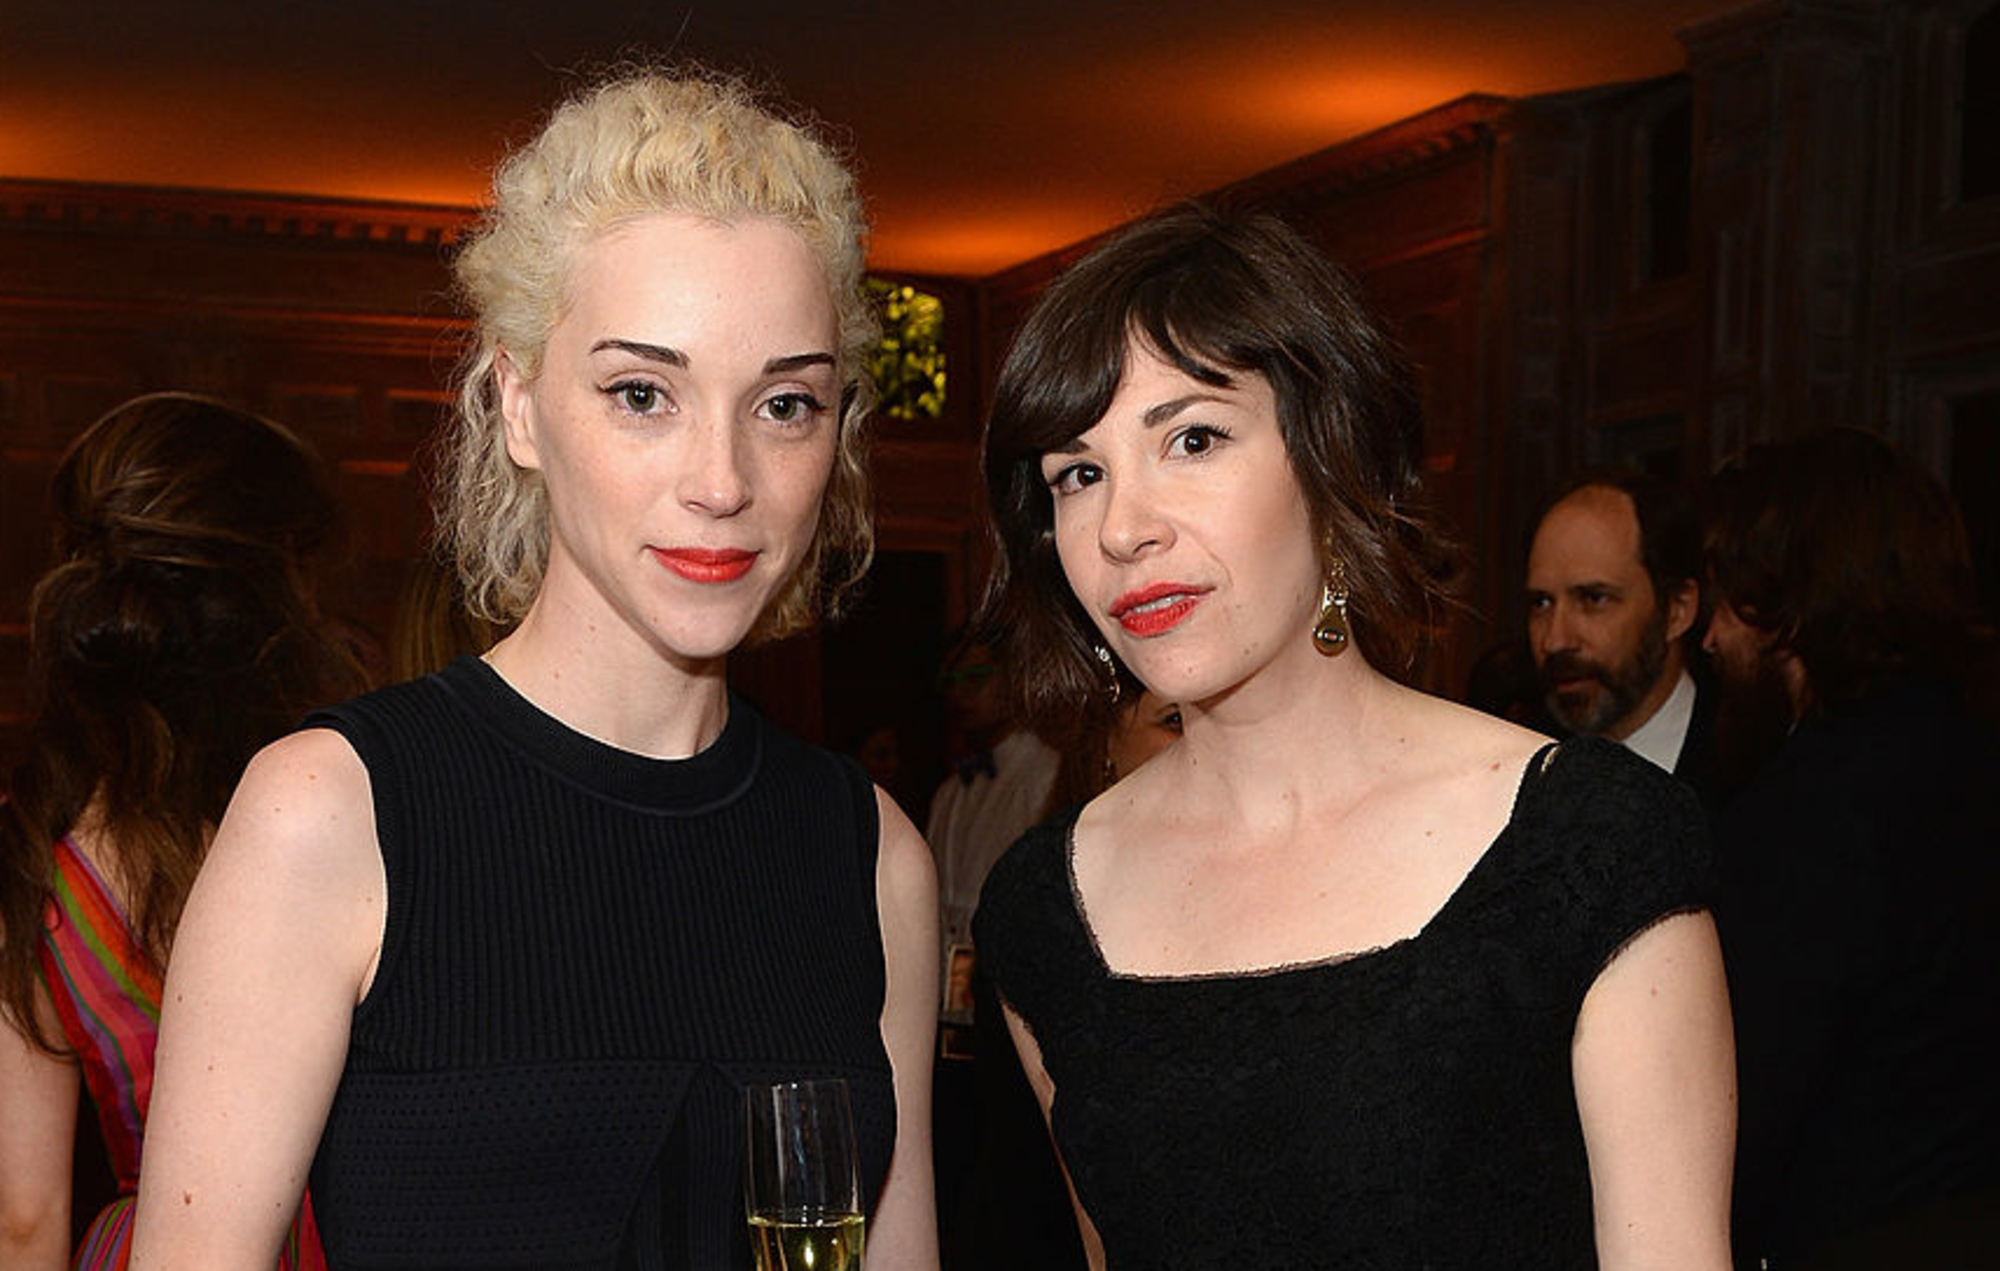 St. Vincent and Carrie Brownstein's 'The Nowhere Inn' will premiere at Sundance 2020